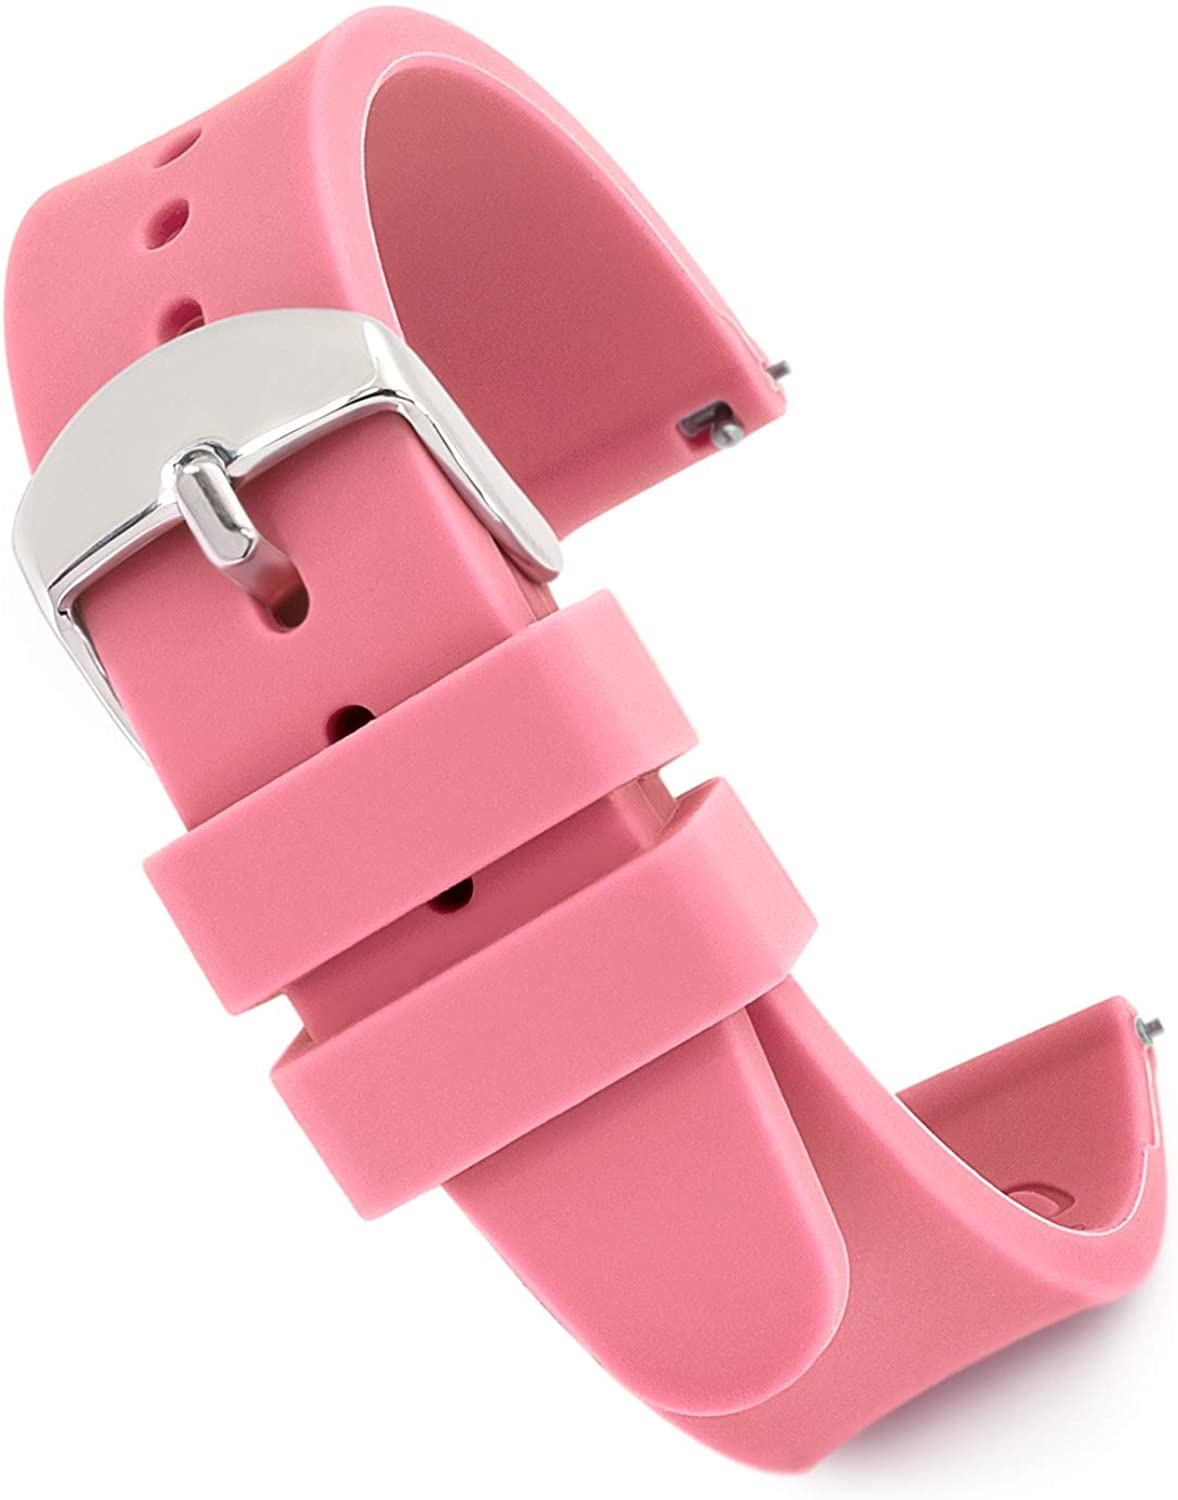 Speidel Scrub Watch Replacement Silicone Rubber Band - 18mm, 20mm, 22mm and 24mm, Multiple Colors Options